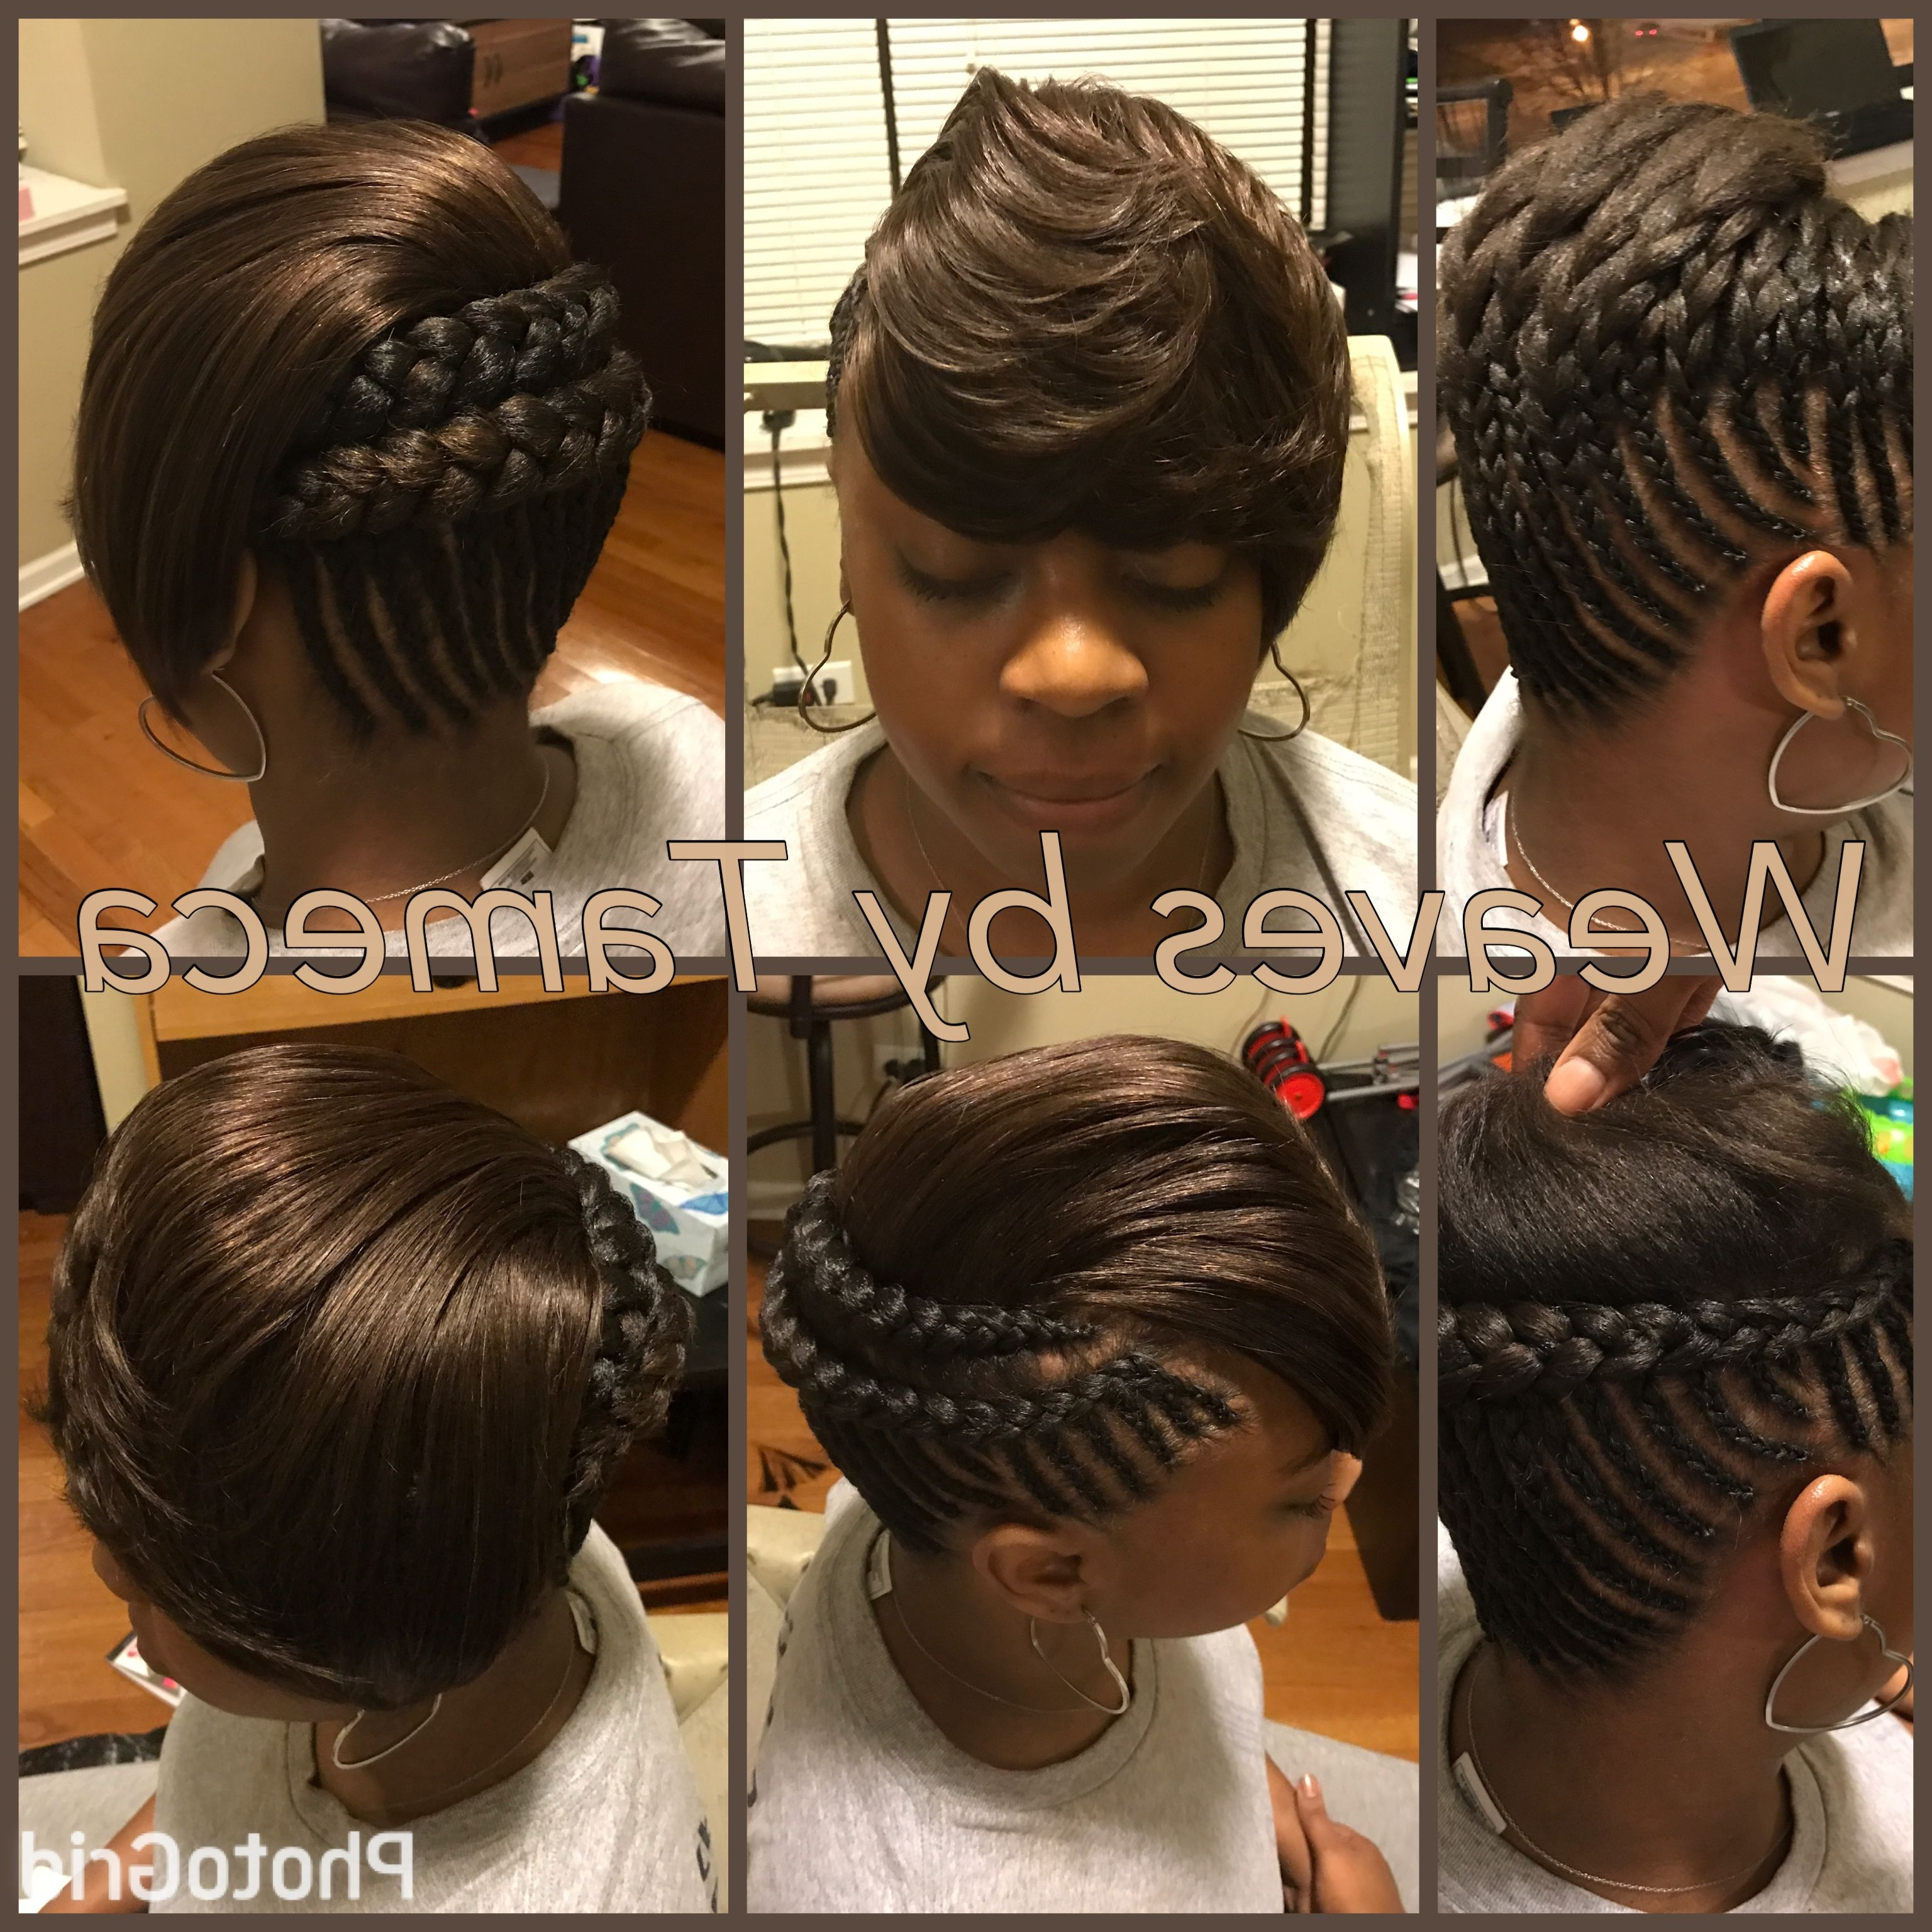 Feed In Braids, Feathered Bang, Bob Look, French Braids, Quick Within Favorite Quick Braided Hairstyles With Weave (View 12 of 15)